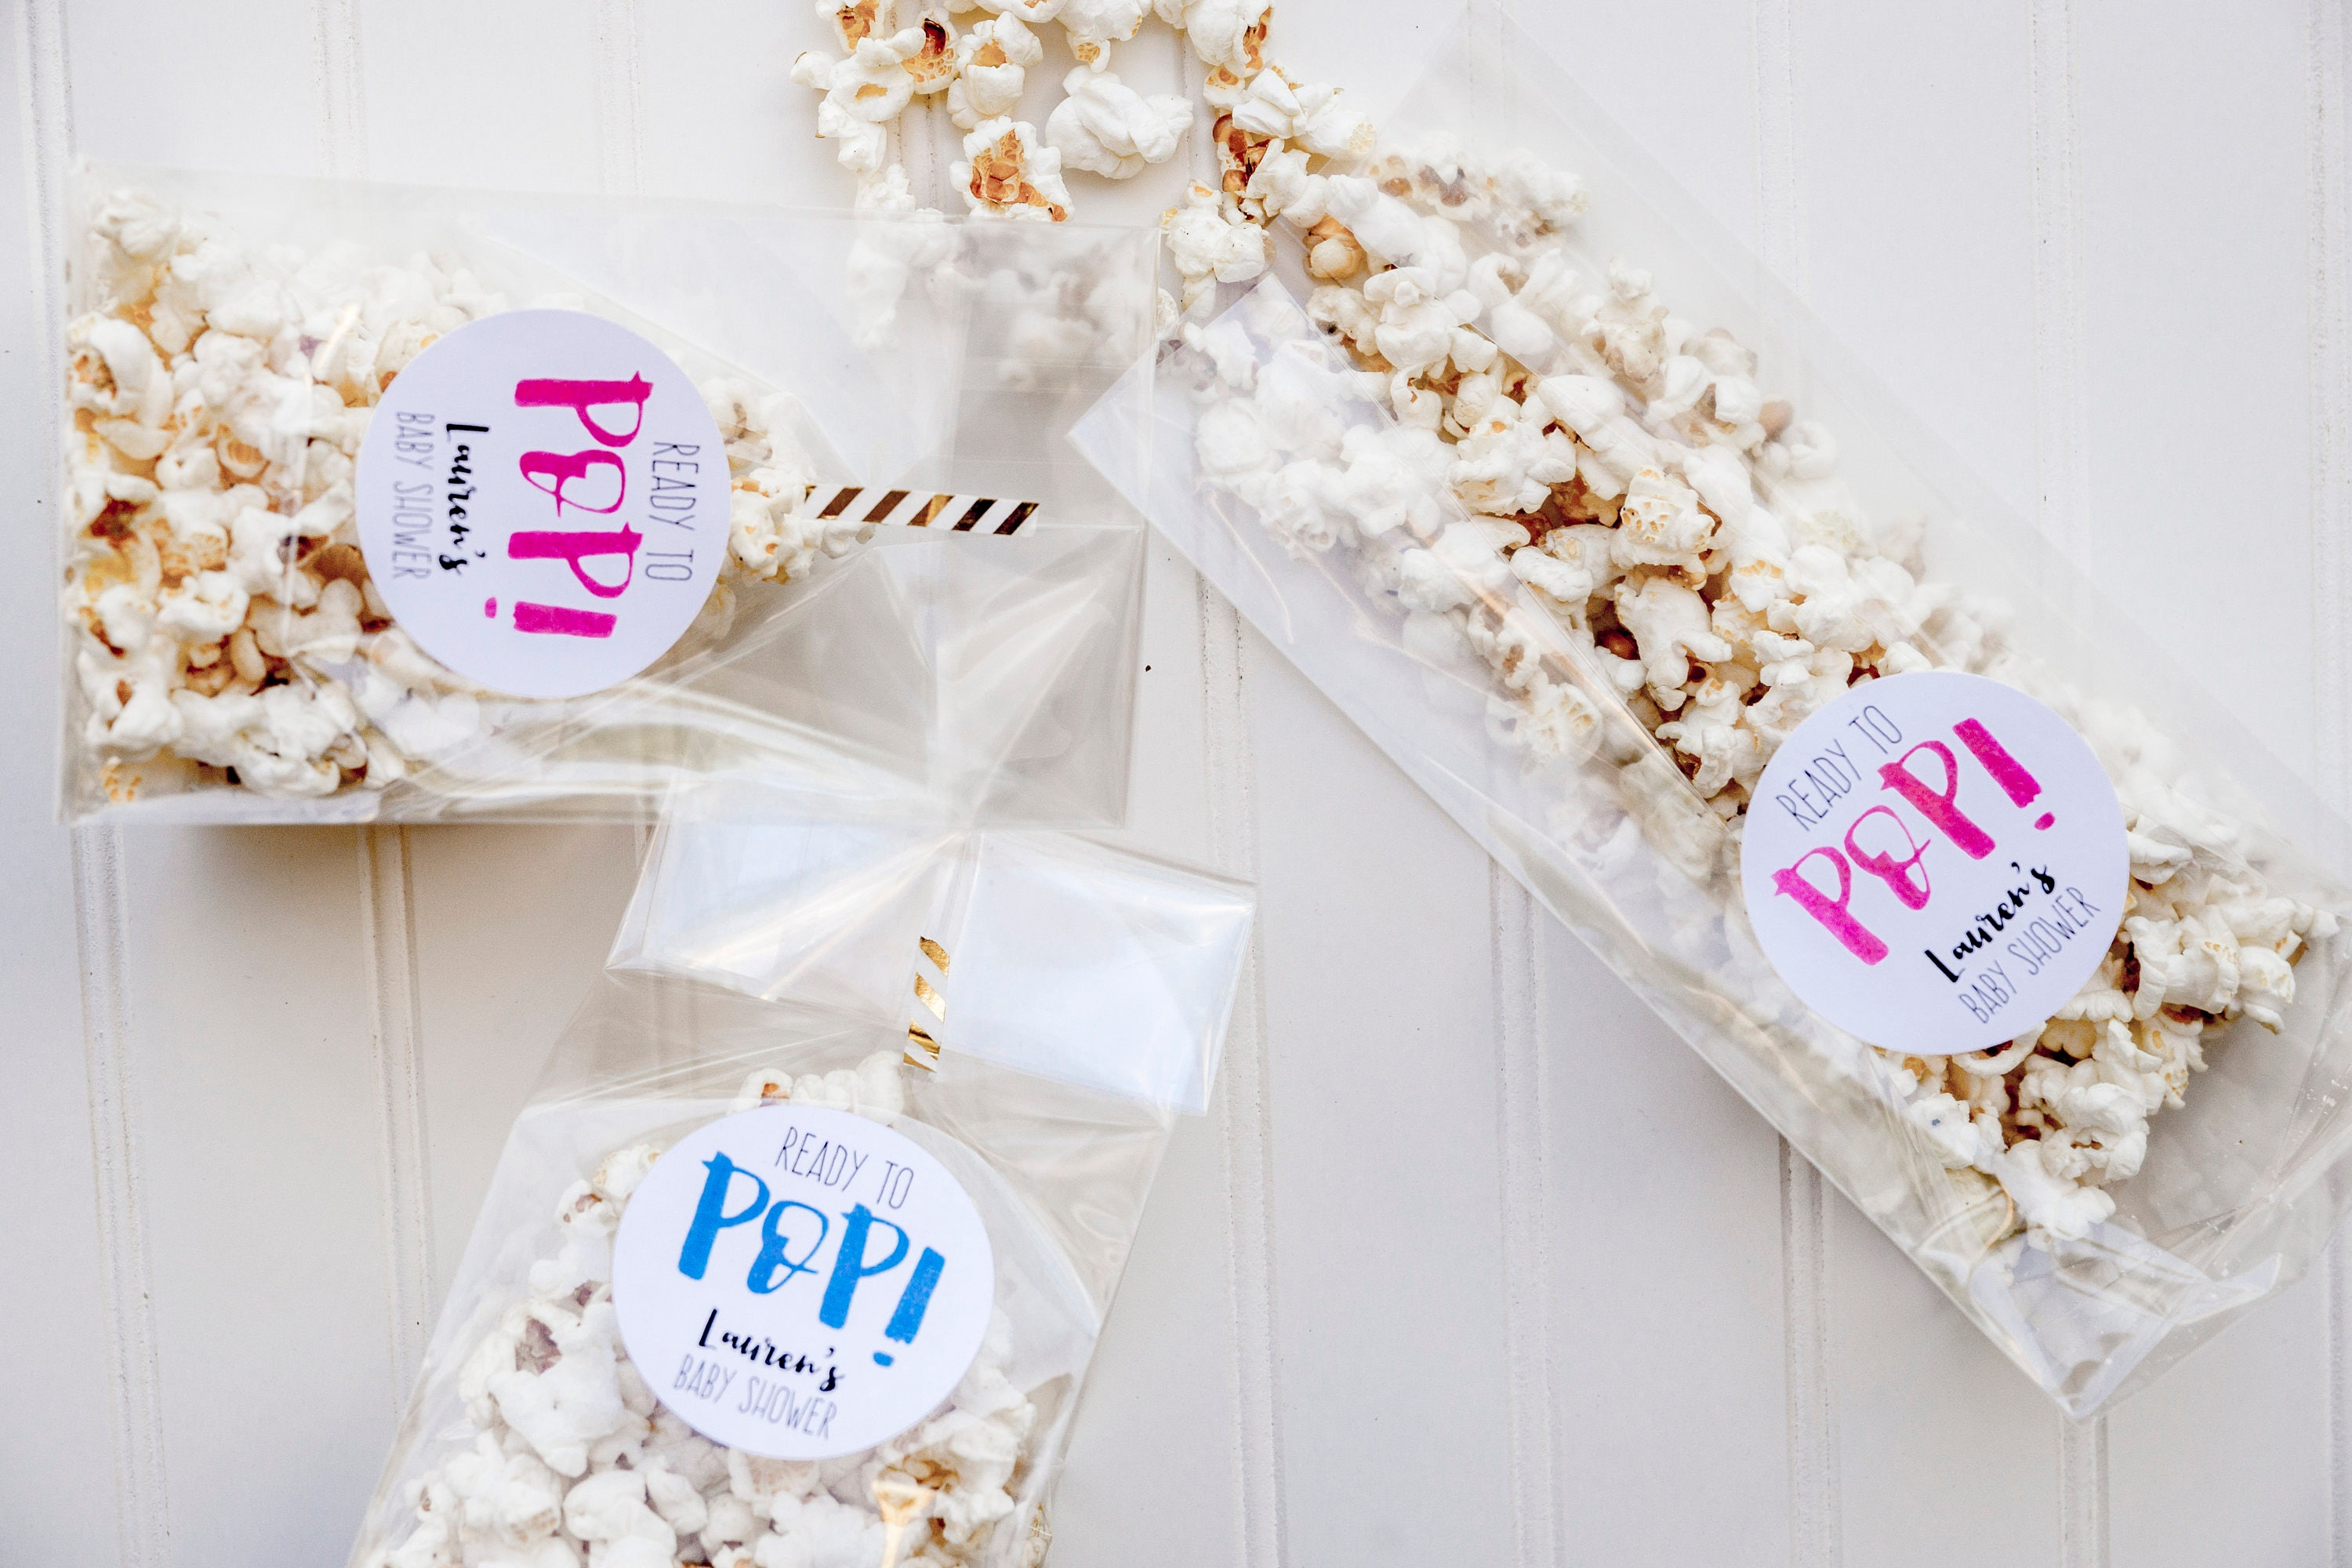 Baby Shower Favor Bag Kits Ready to Pop Favor Bags Popcorn